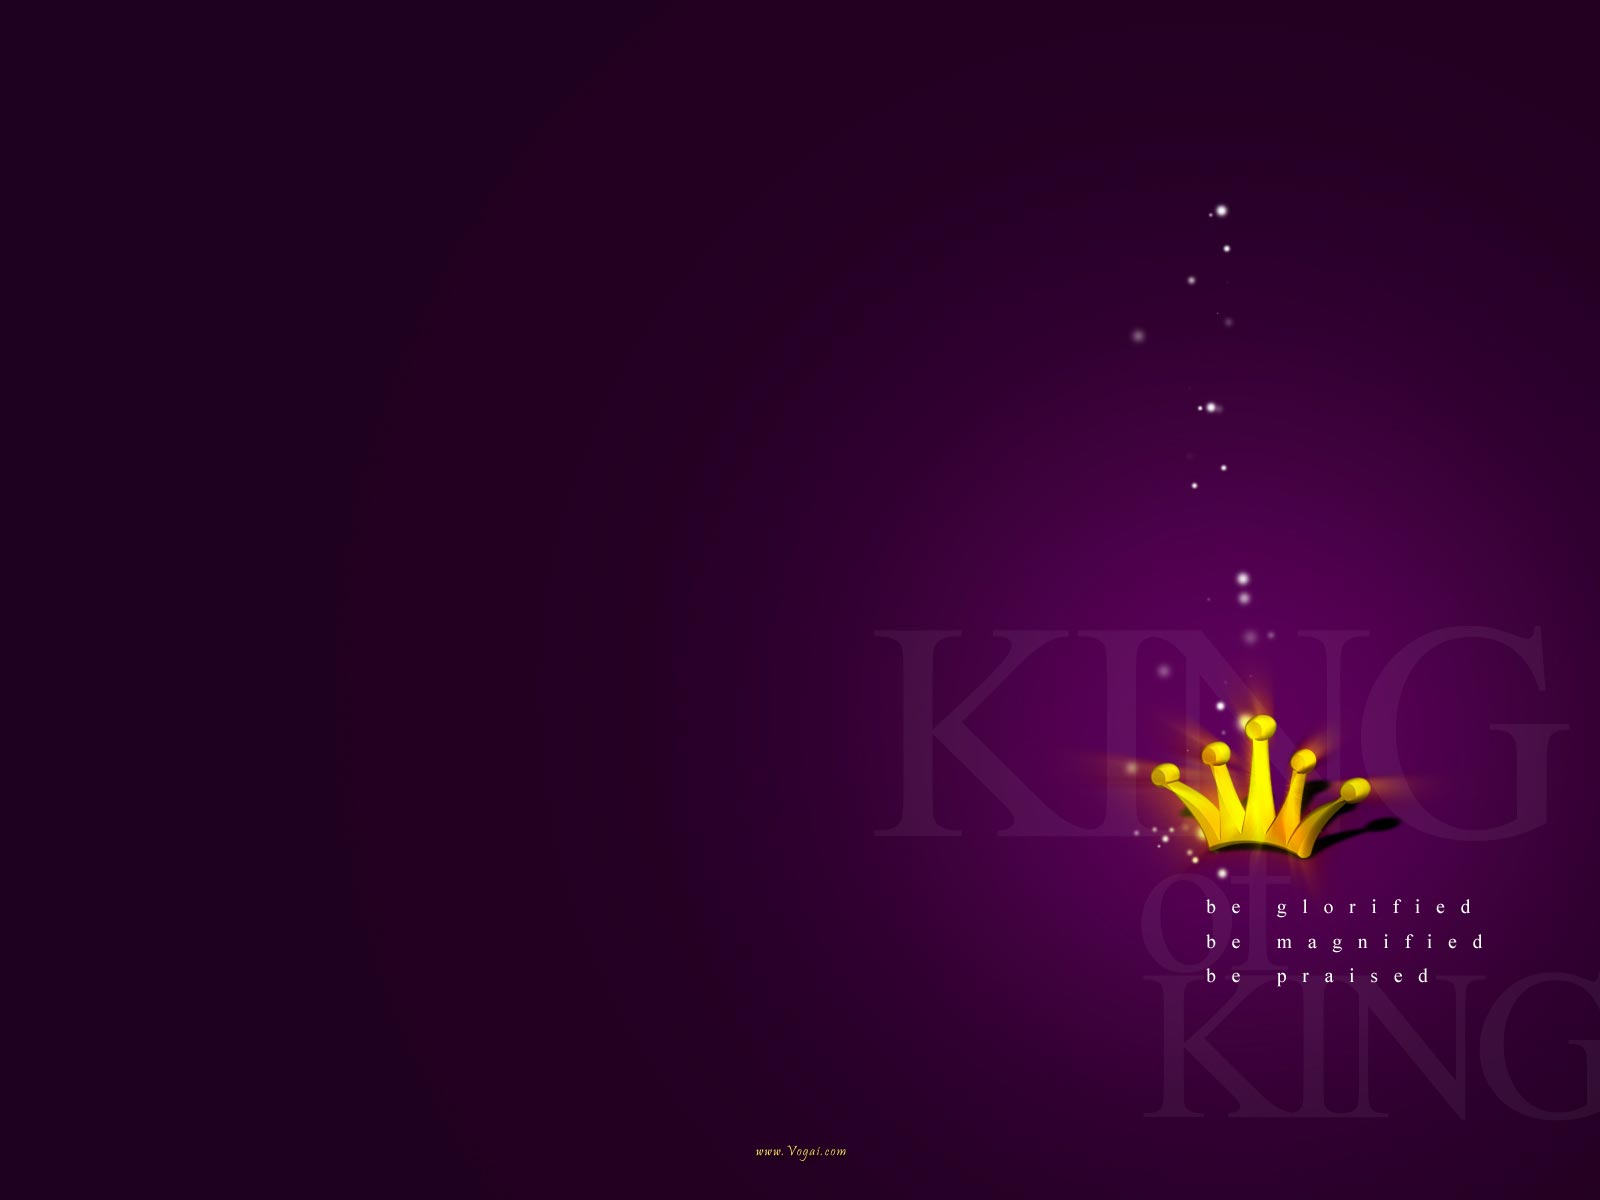 Christian Graphic King of Kings Violet Background Wallpaper 1600x1200